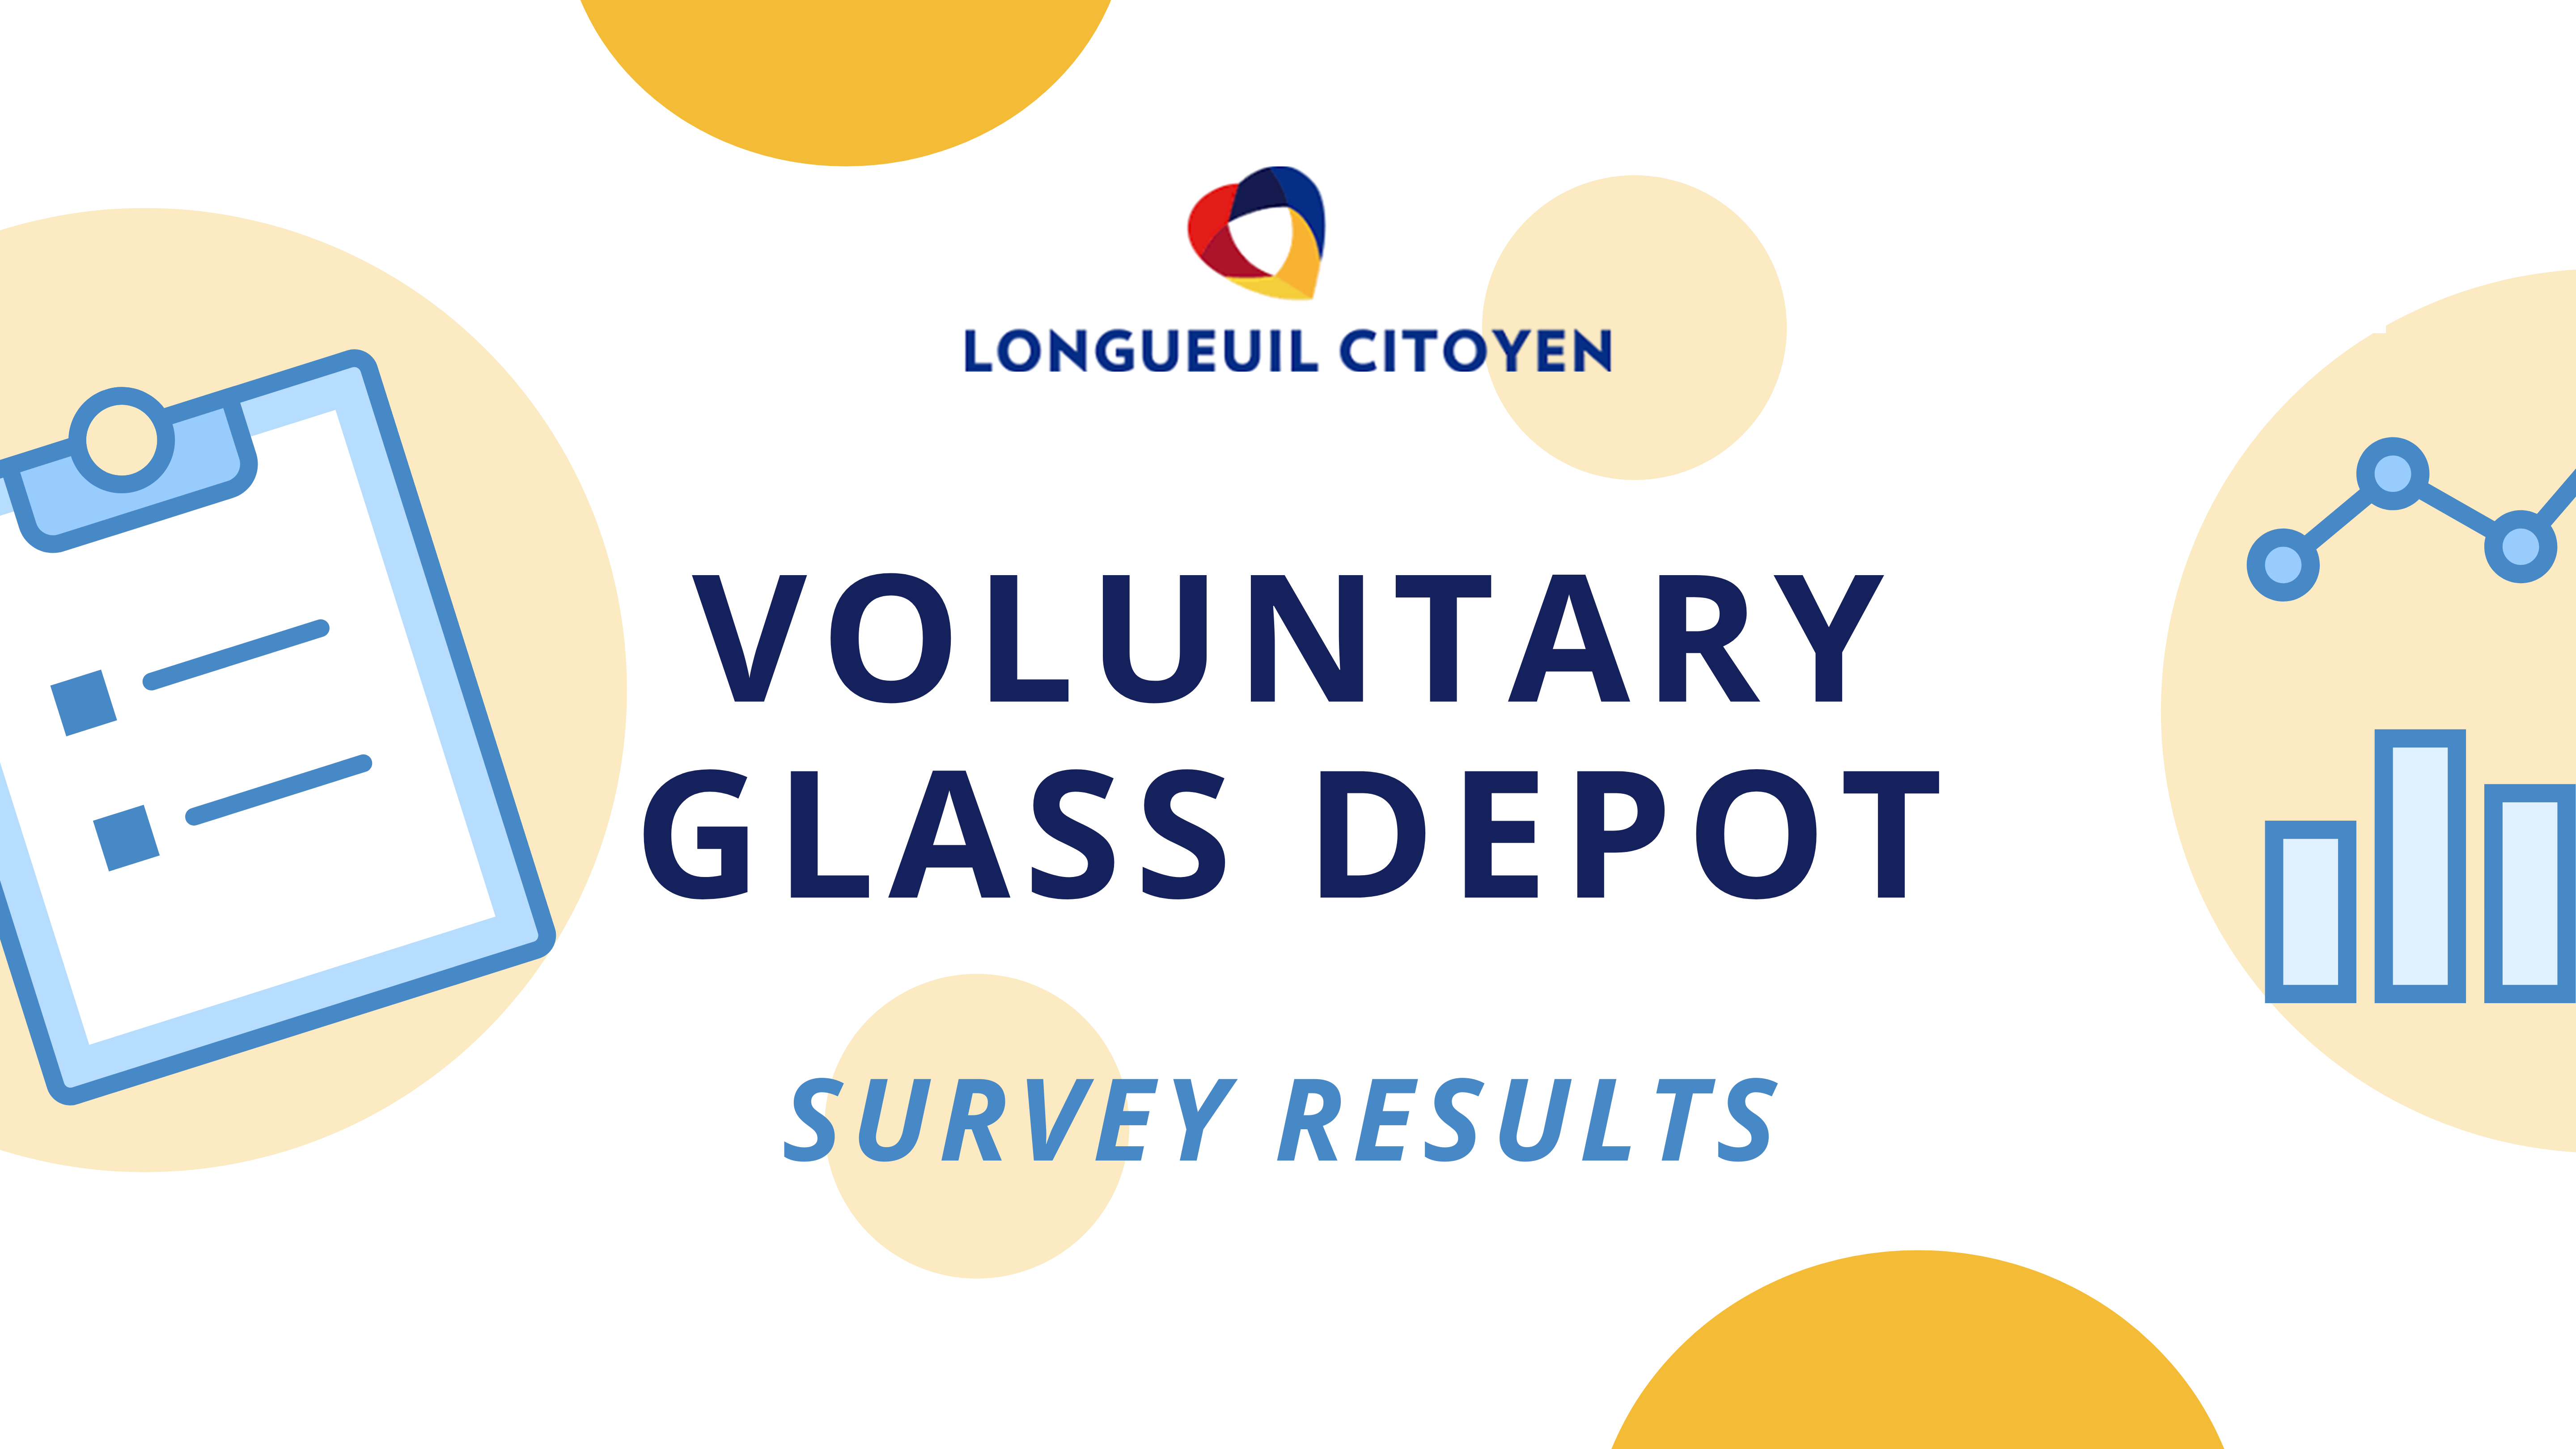 Voluntary glass depot: survey results